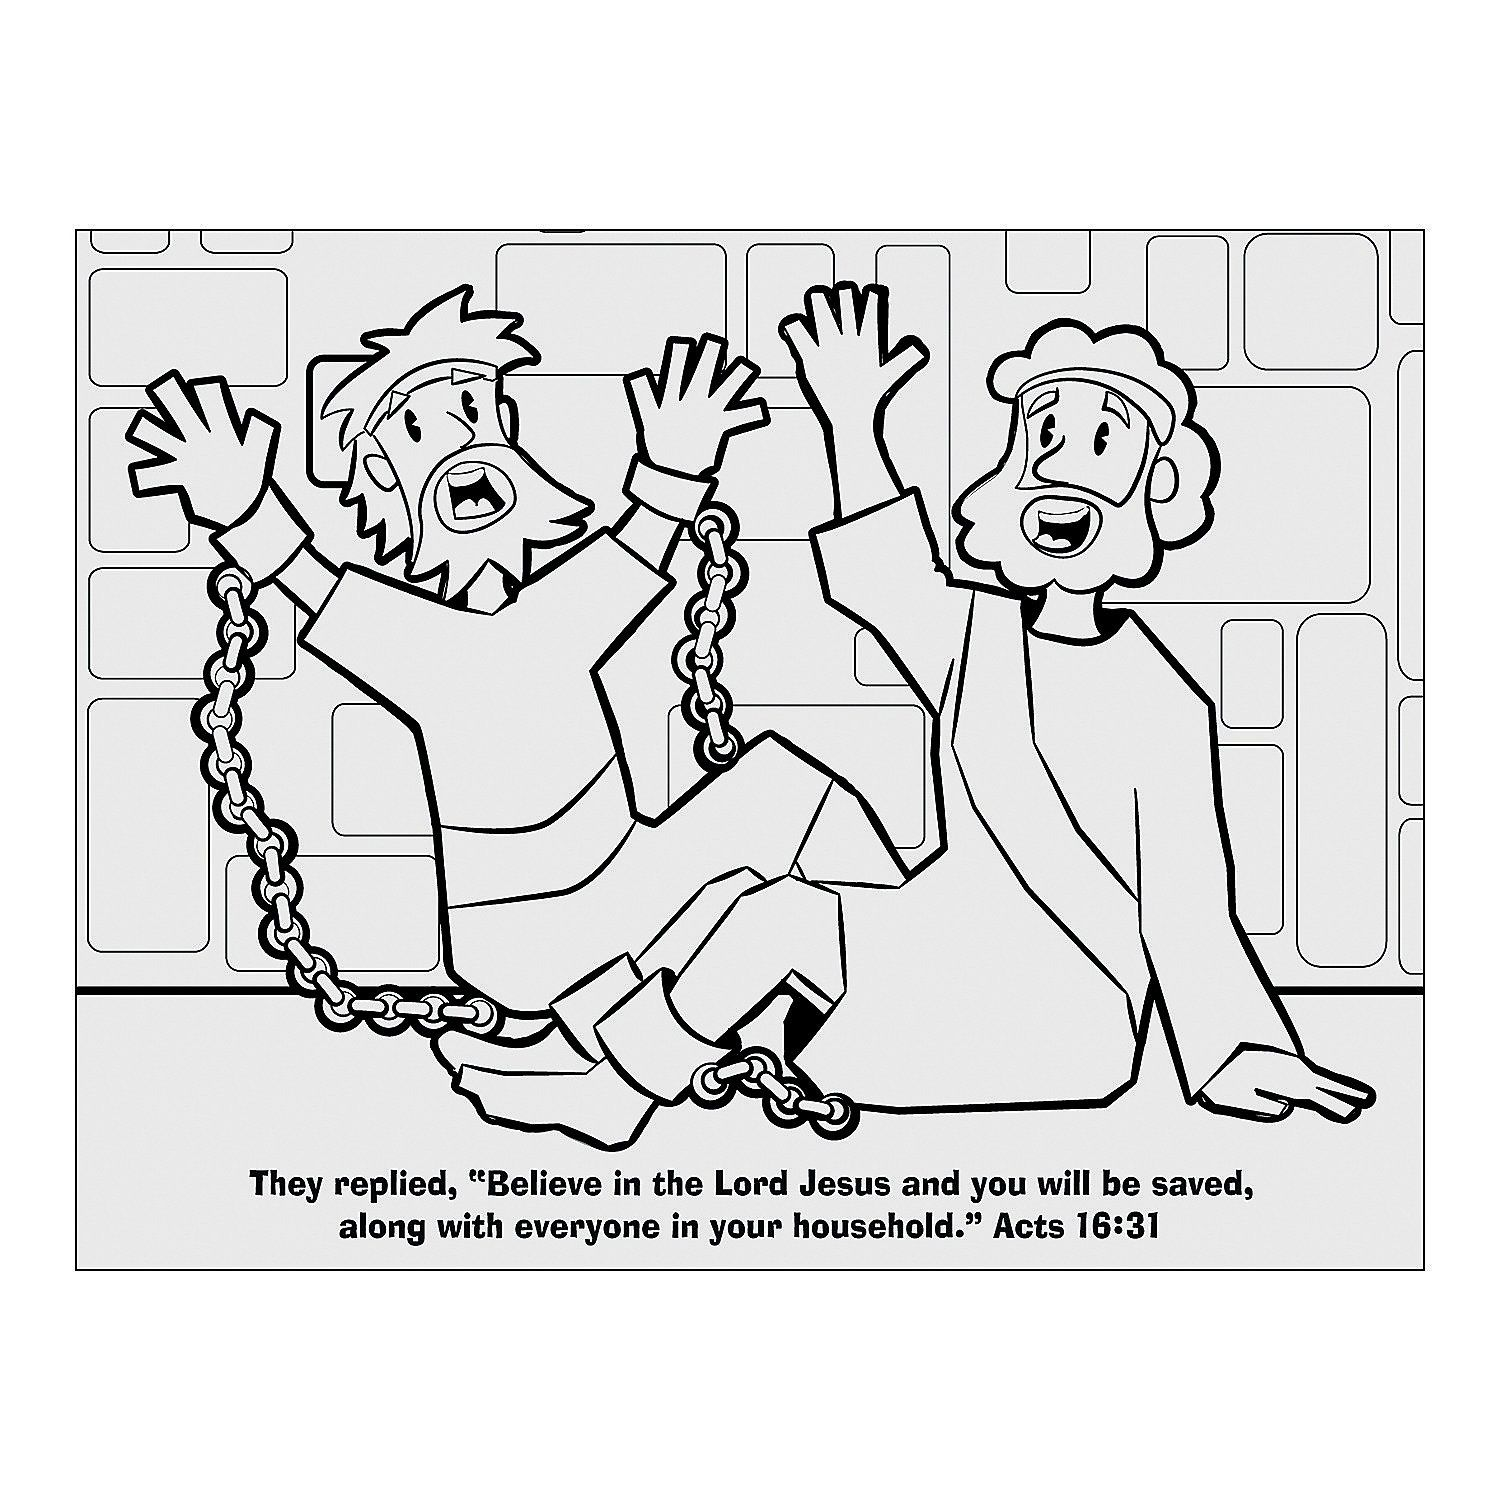 Paul And Silas Coloring Page | Sunday school coloring ...